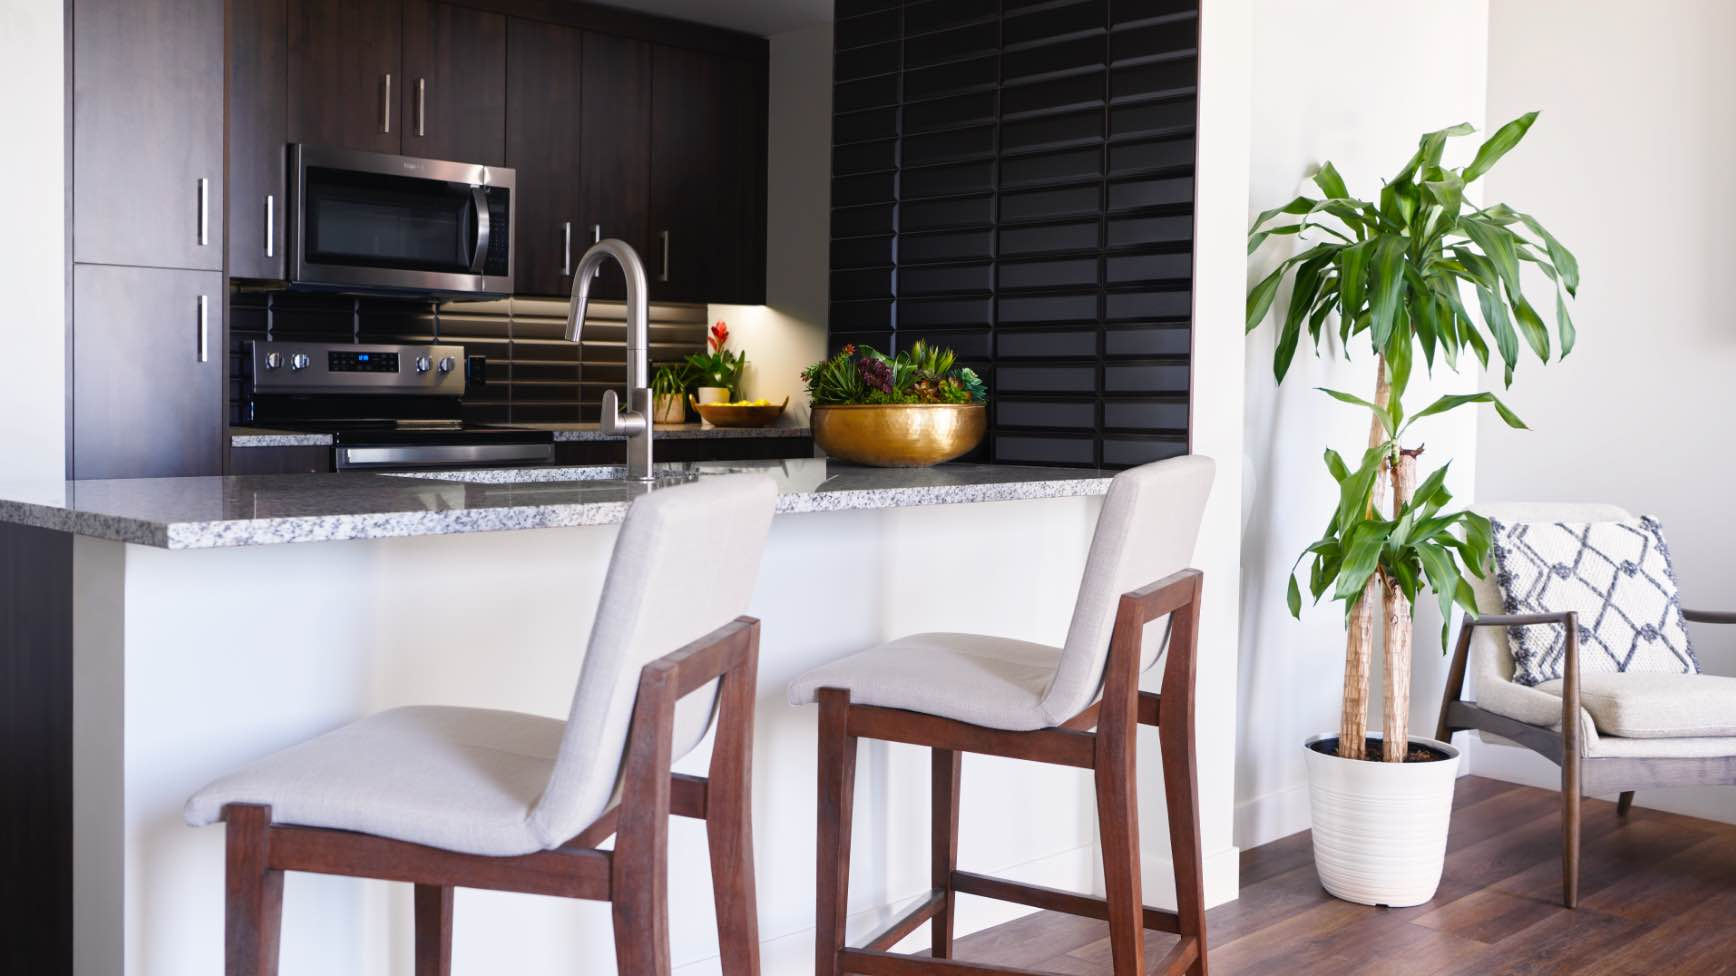 two white bar stools looking into a kitchen